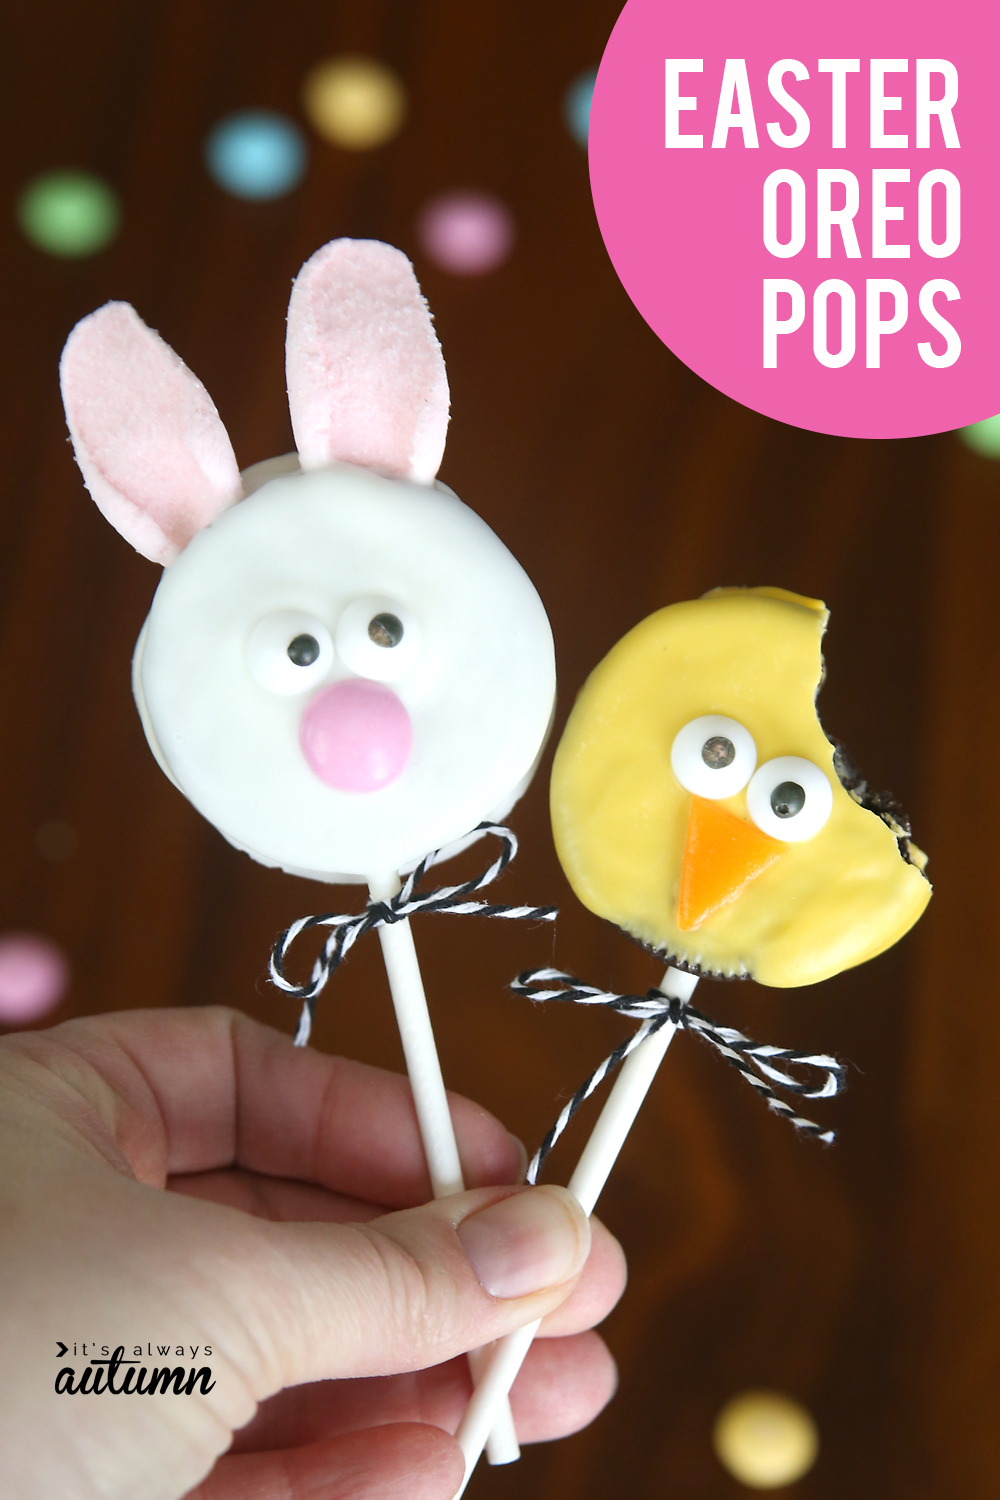 Easter Oreo pops! These chick and bunny Oreo pops are the perfect easy treat for Easter.